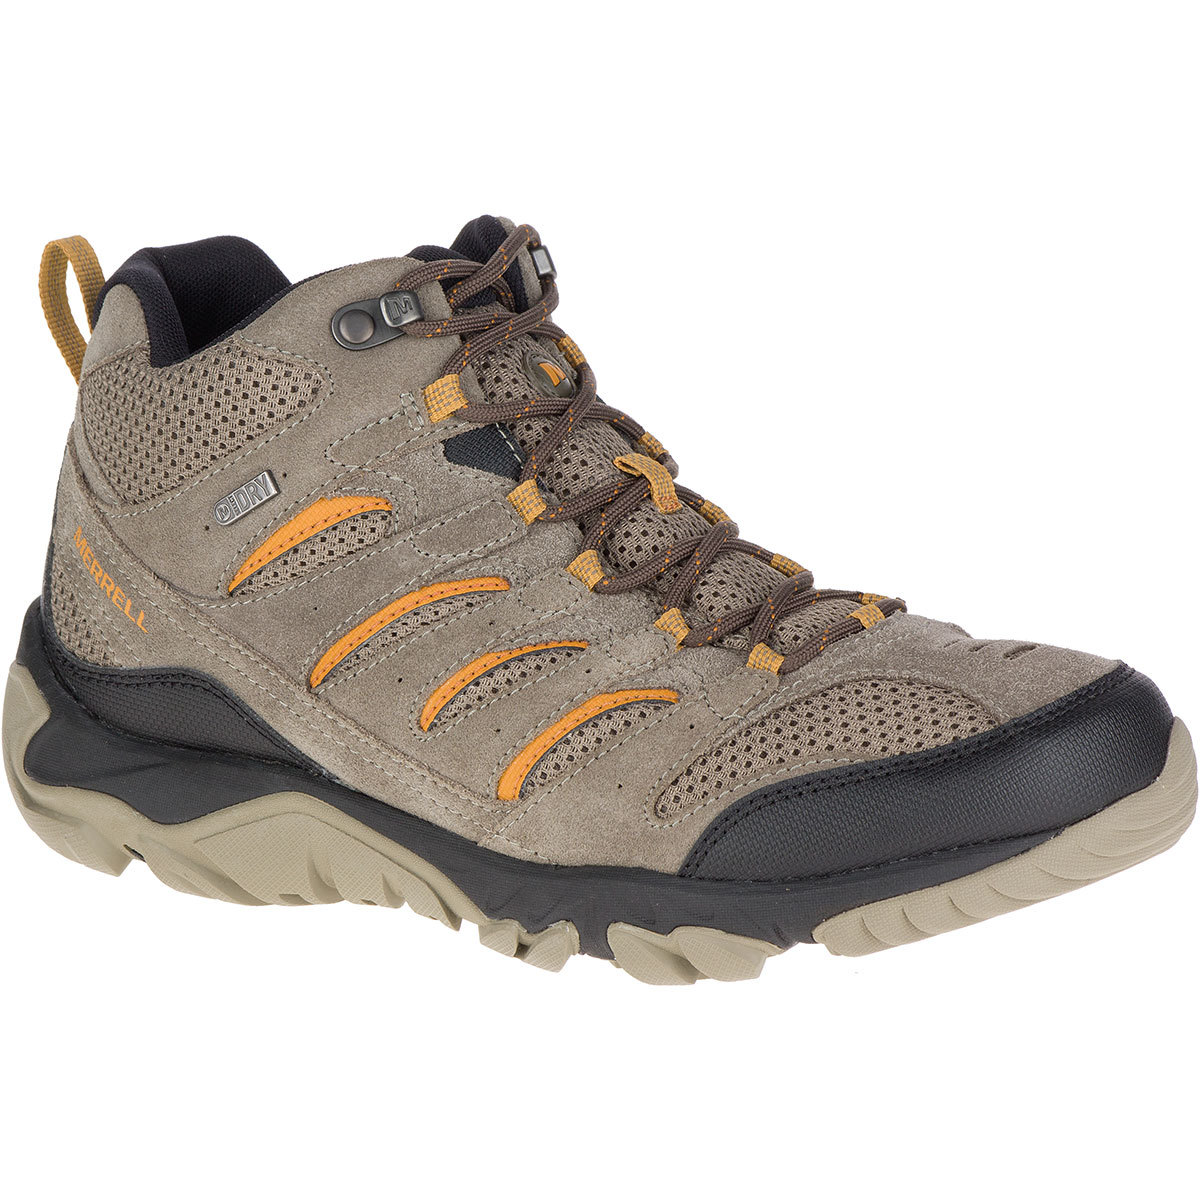 Merrell Men's White Pine Mid Ventilator Waterproof Hiking Boots